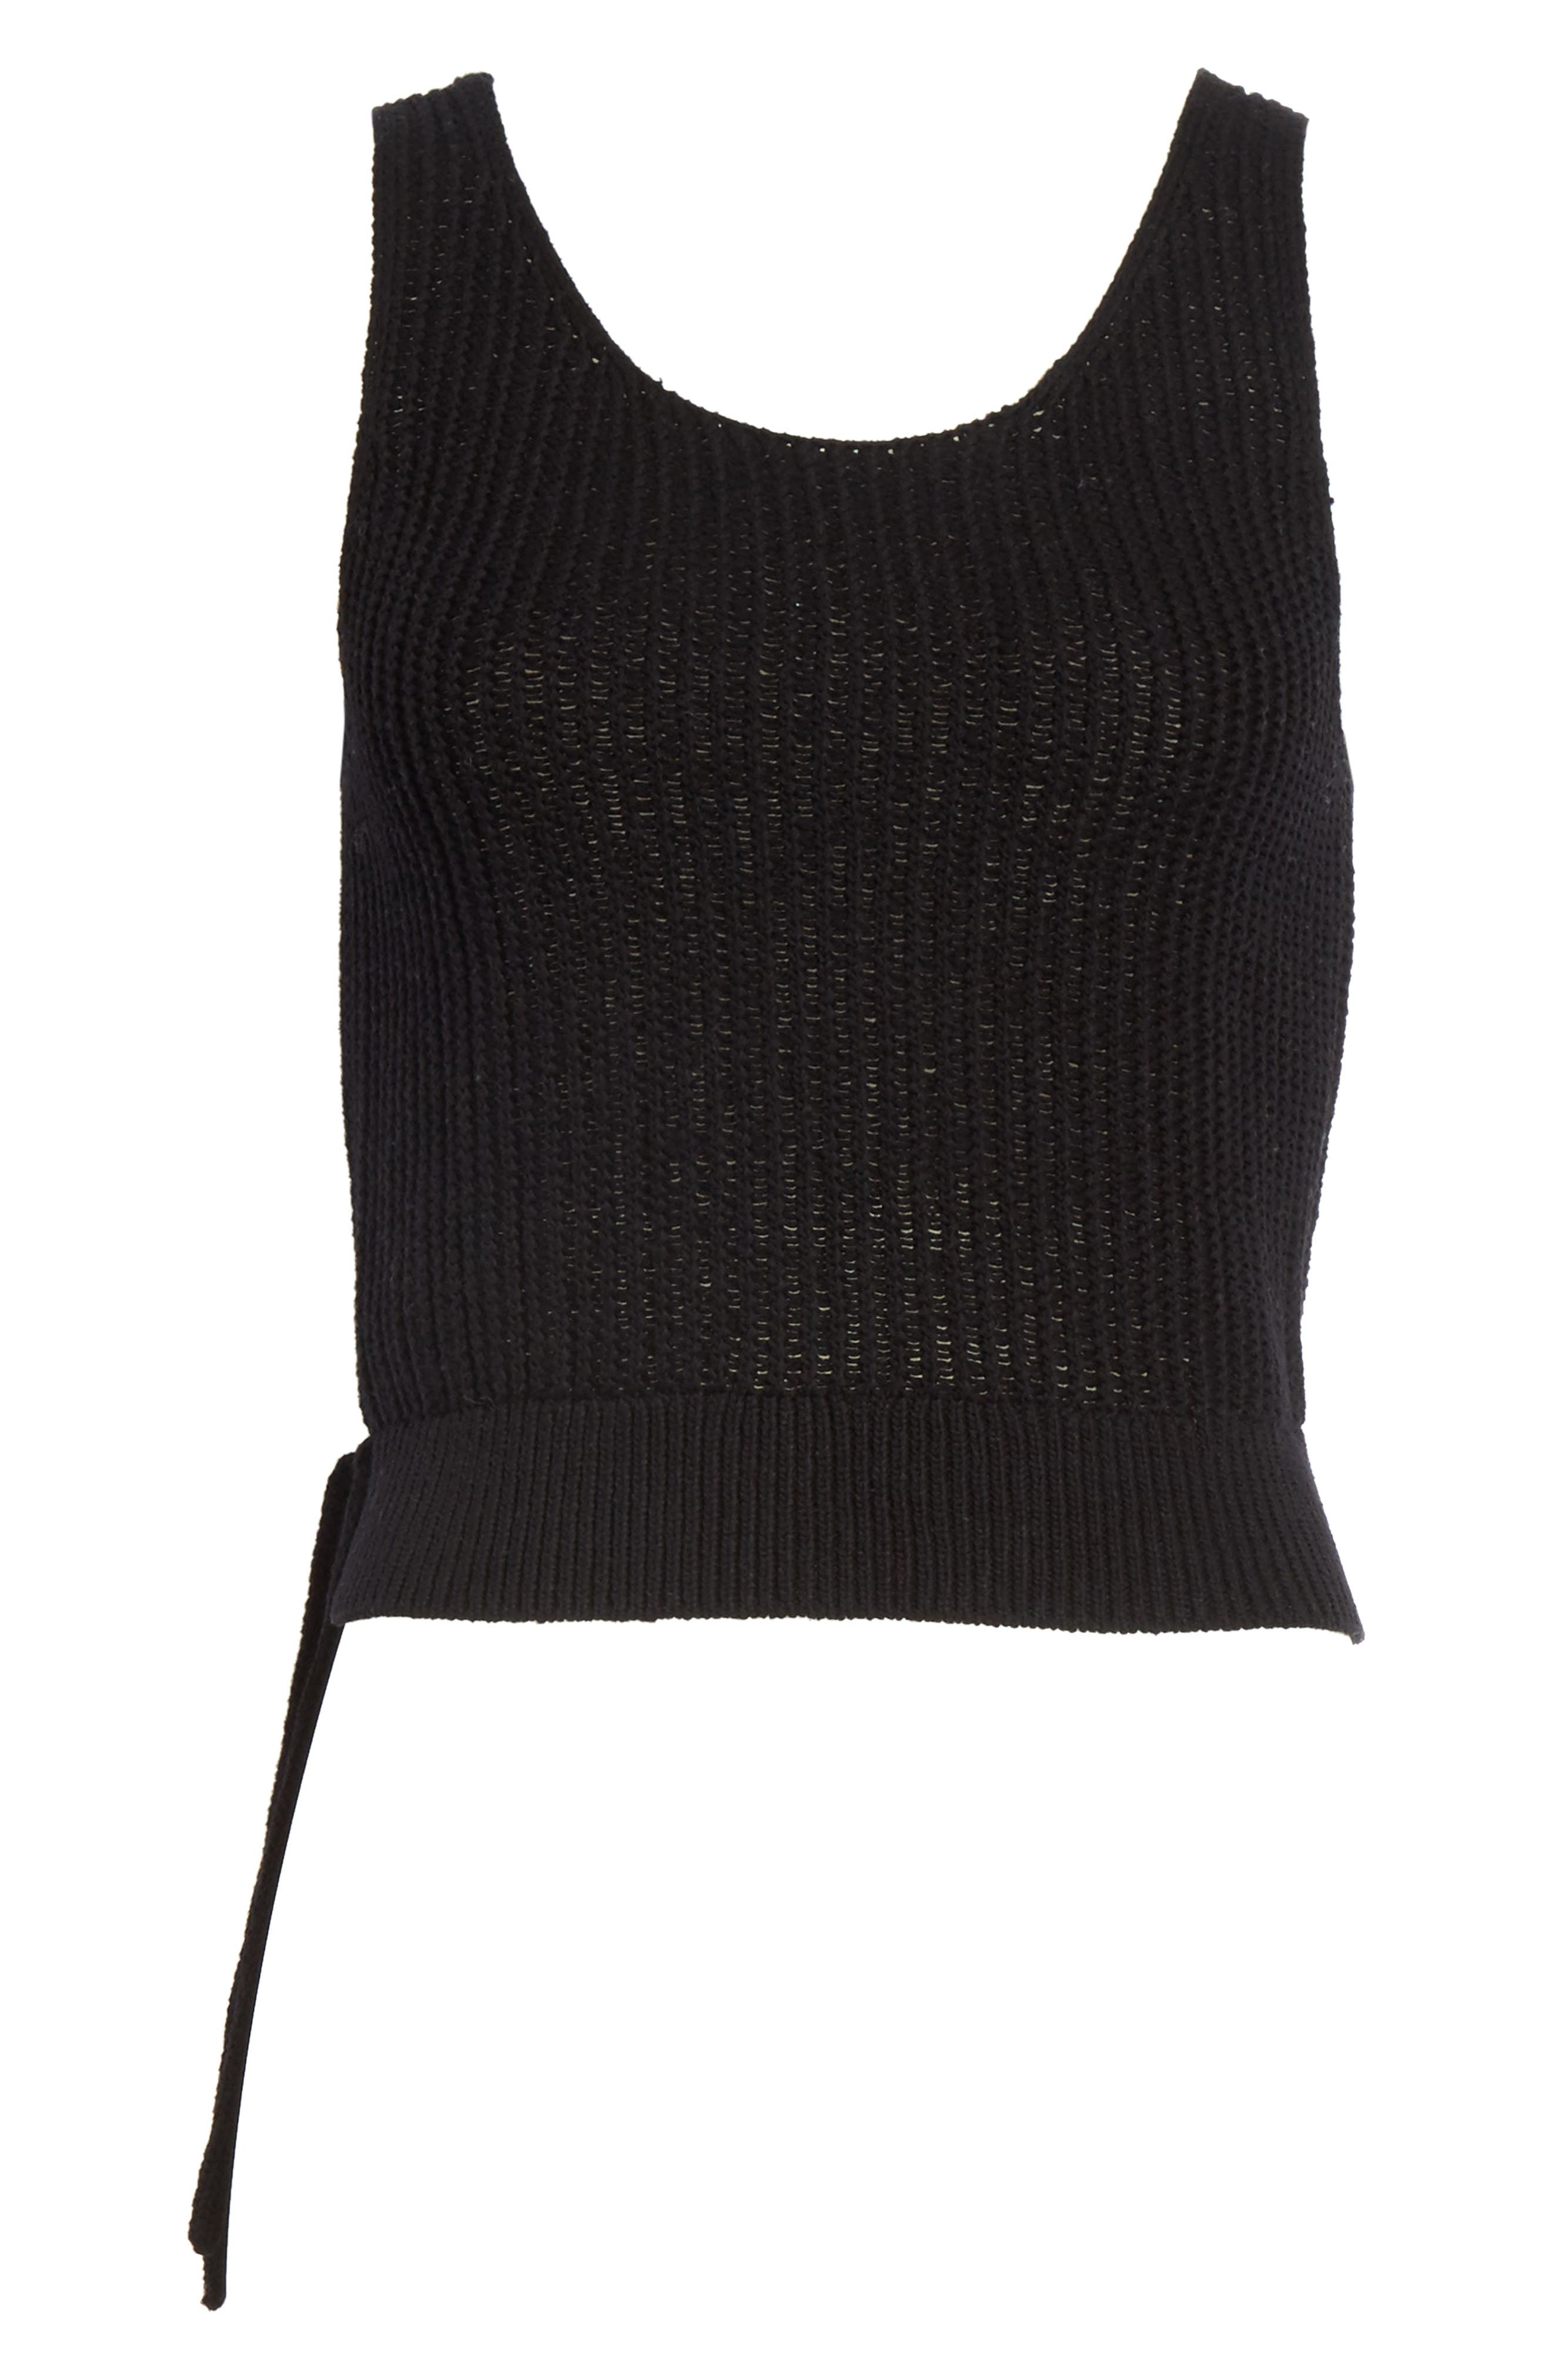 Crossover Back Tank Sweater,                             Alternate thumbnail 6, color,                             001